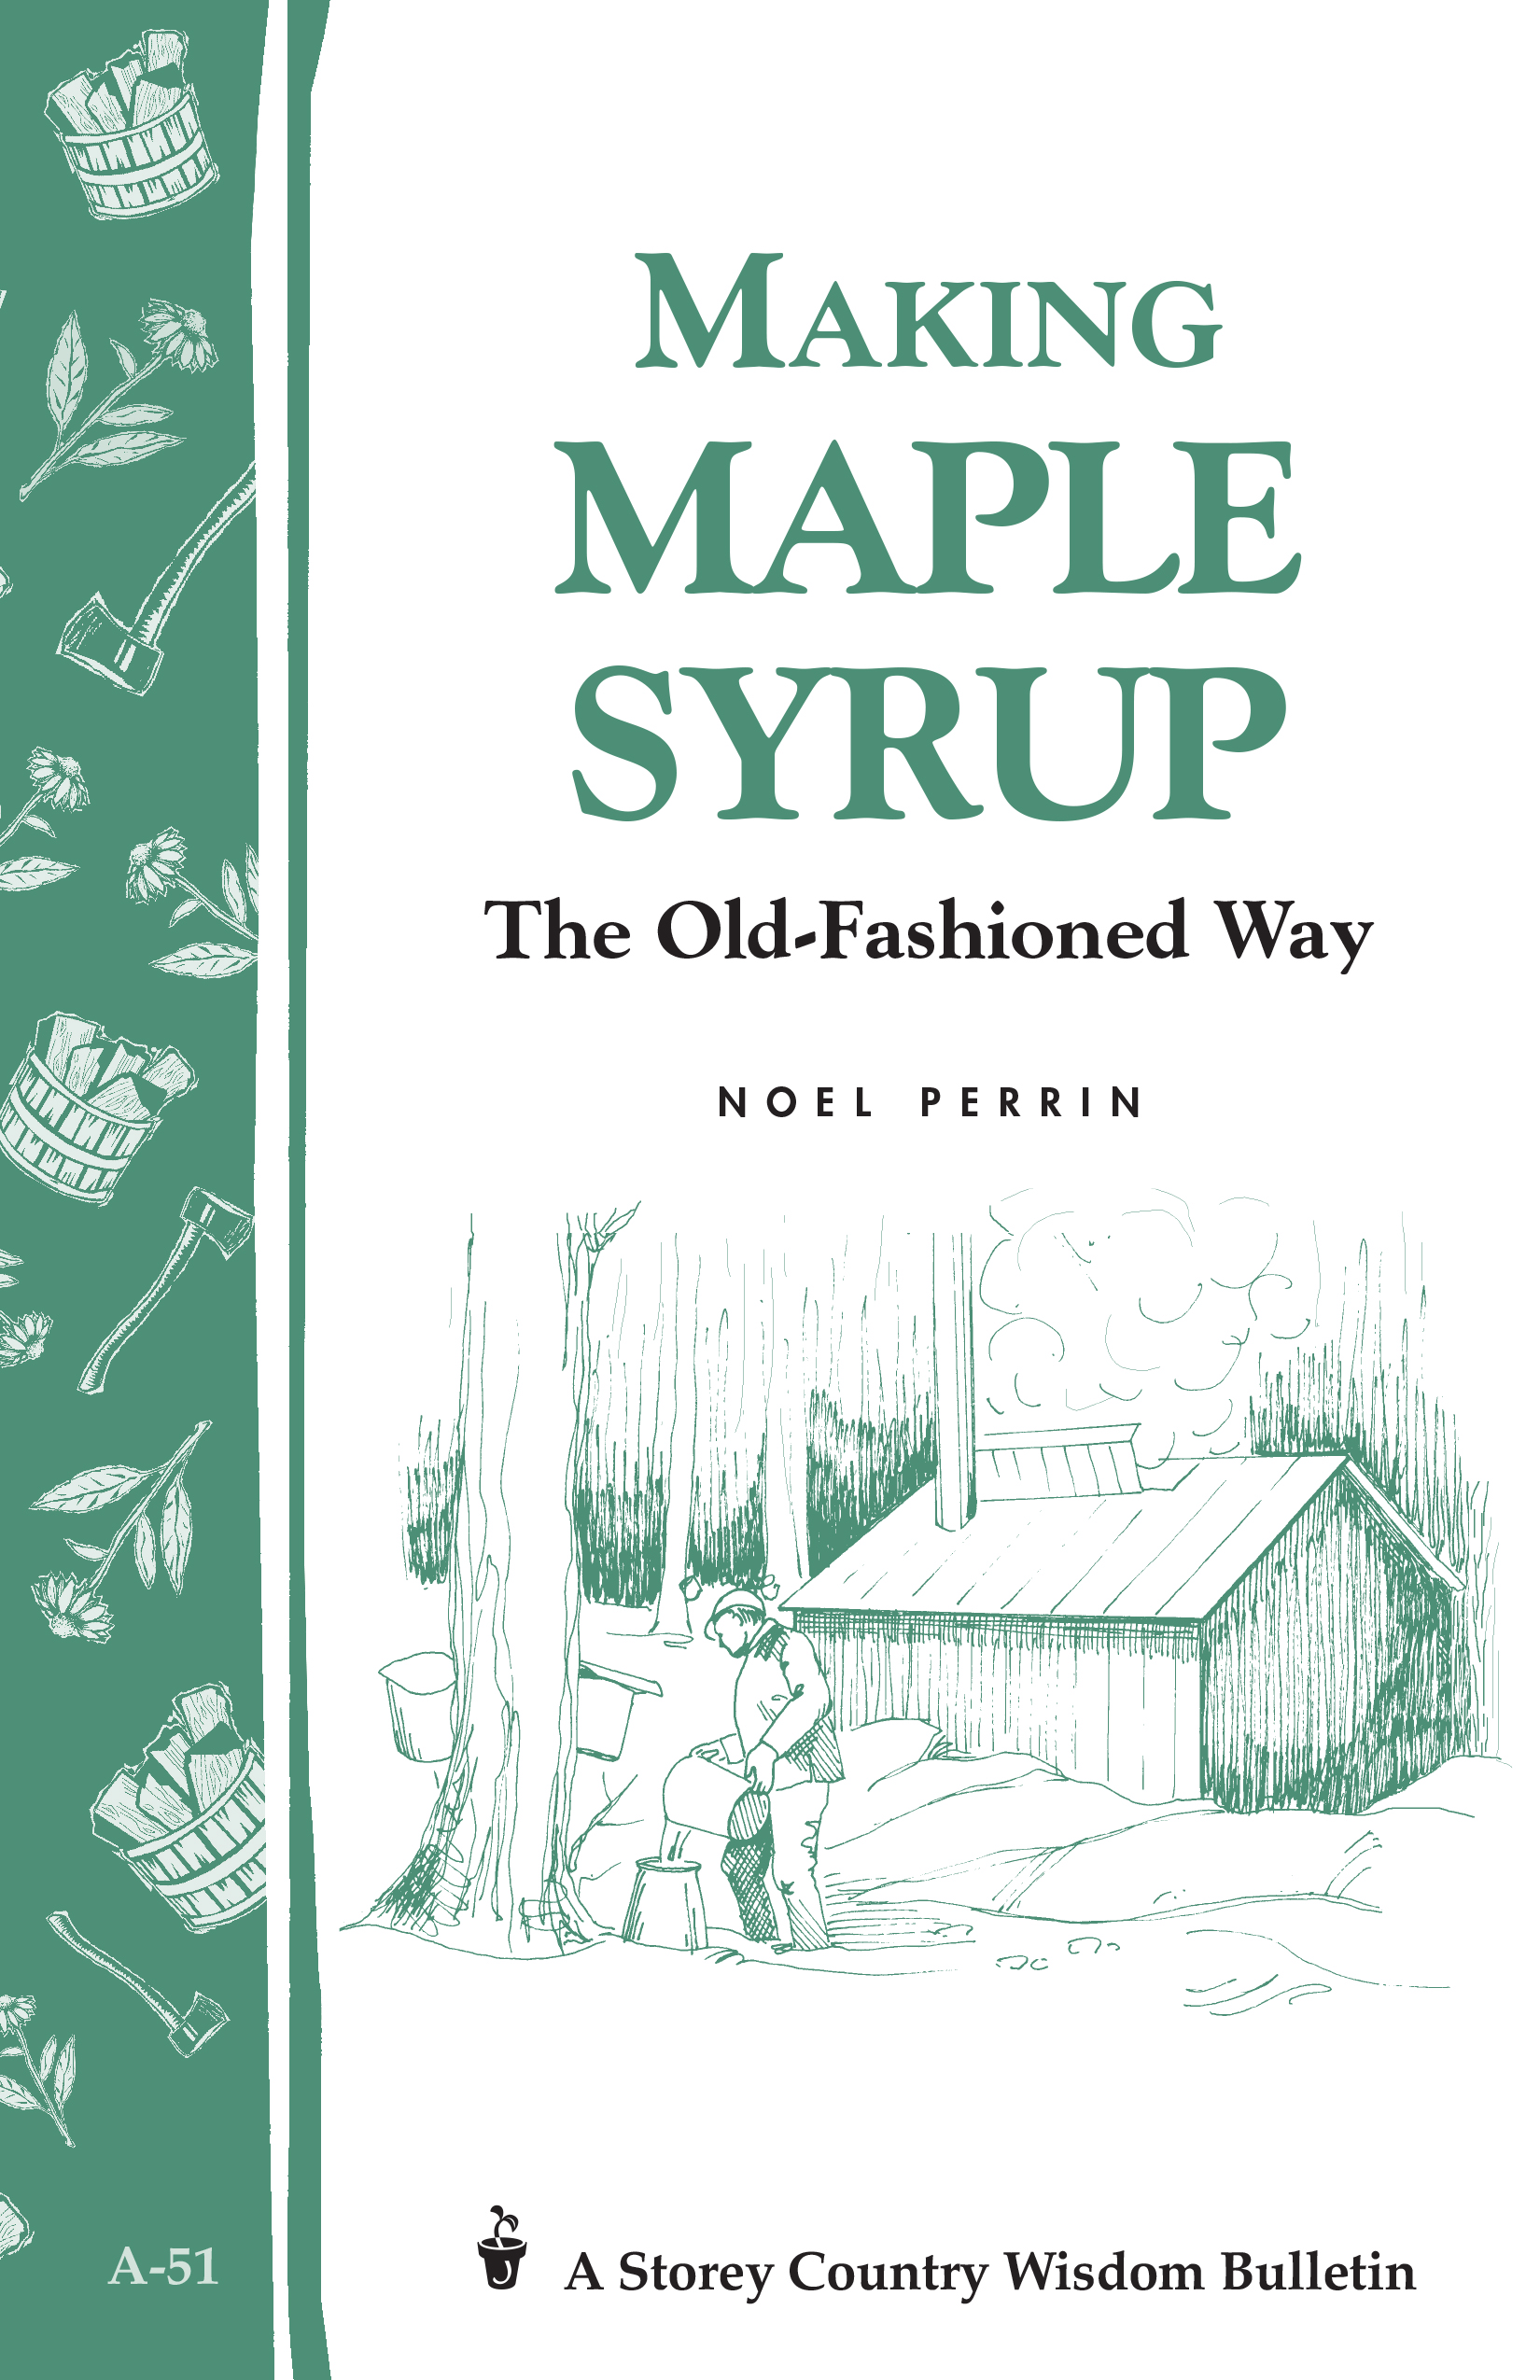 Making Maple Syrup Storey's Country Wisdom Bulletin A-51 - Noel Perrin